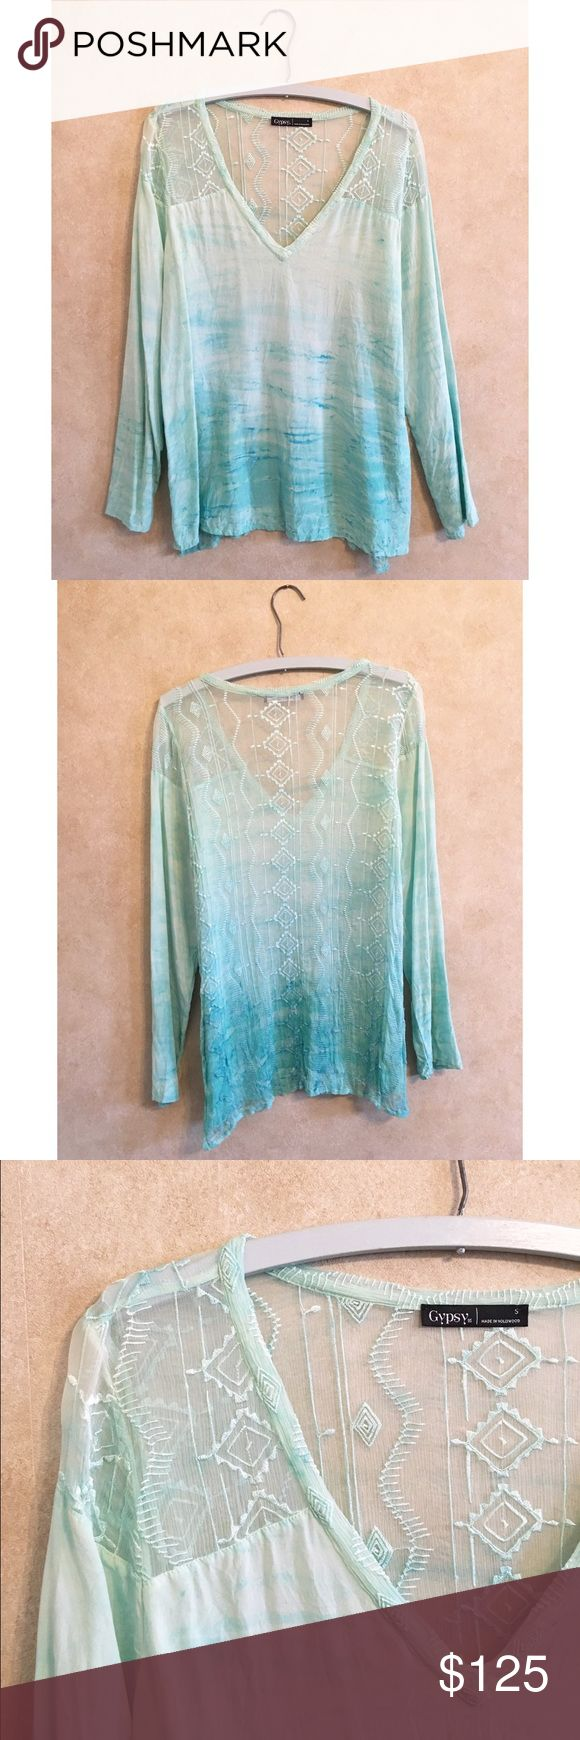 Gypsy 05 Green Ombré Blouse. Dip Dye Style. Made of silk and lace. Loose and flowy fit. Sheer fabric at shoulders and full back. Perfect for any semi-formal event, such as a shower or birthday party. Worn twice, like new. Gypsy 05 Tops Blouses